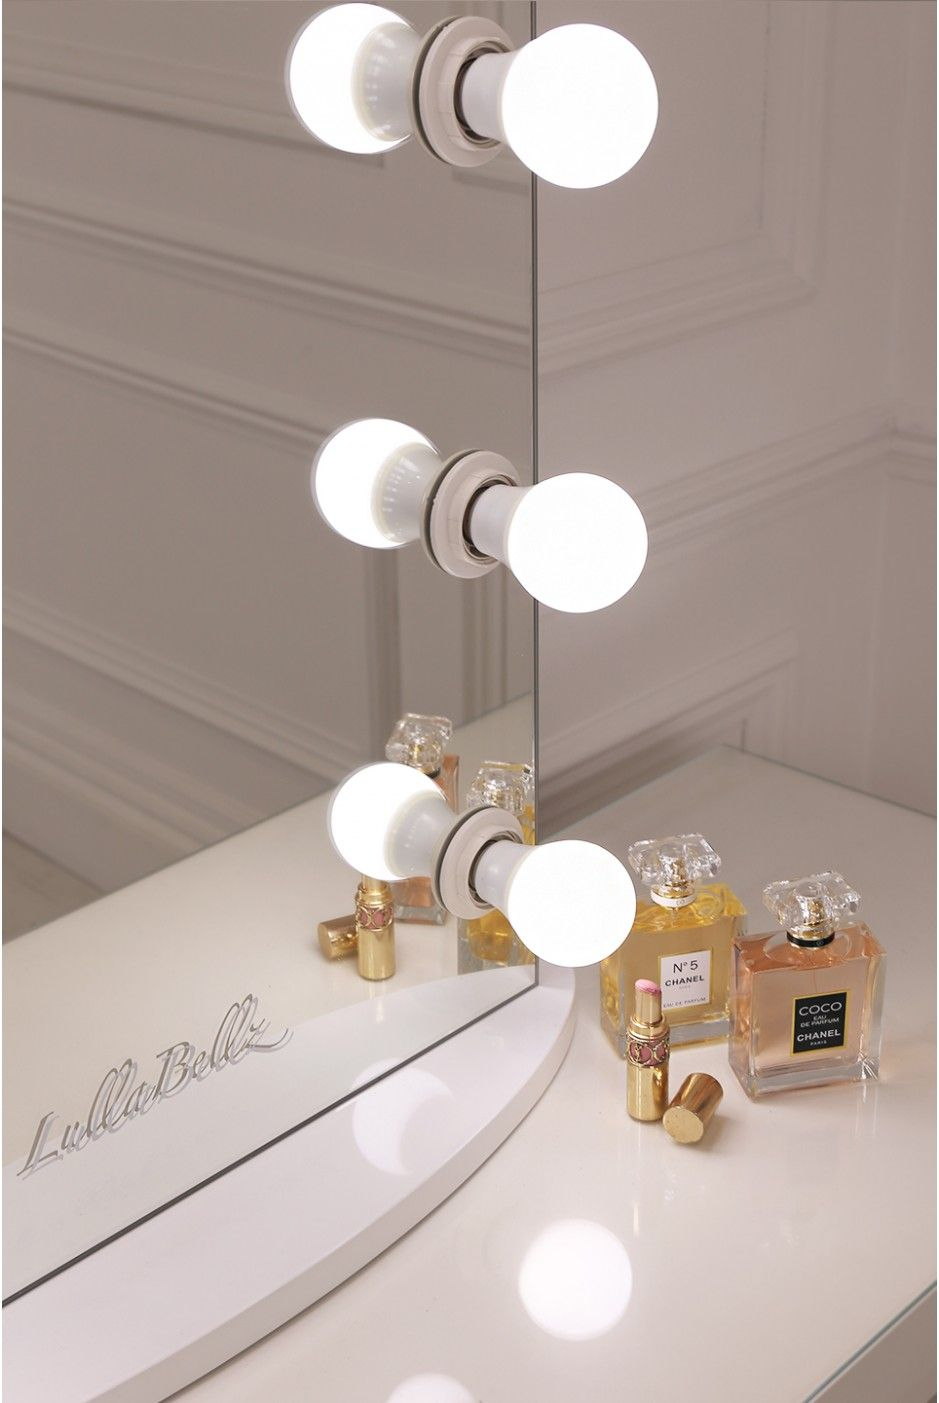 Simplistic Crisp White Finish Embedded Hollywood Light Up Mirror Diy Wiring Lampu Rumah With Ten Led Bulbs